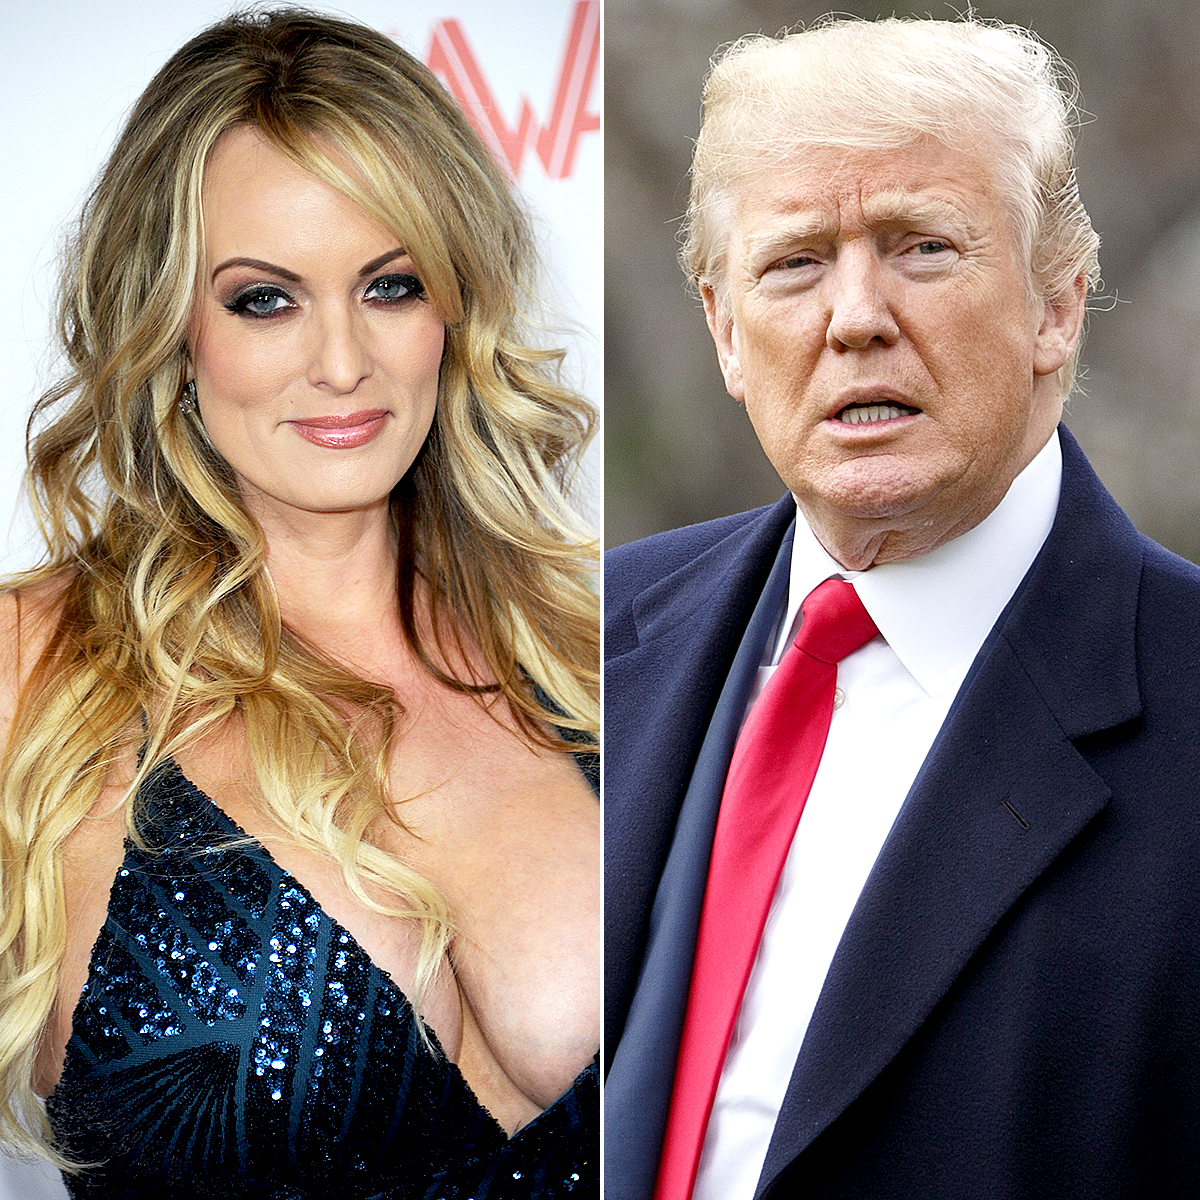 Michael Cohen Taunts Stormy Daniels Over Lawsuit